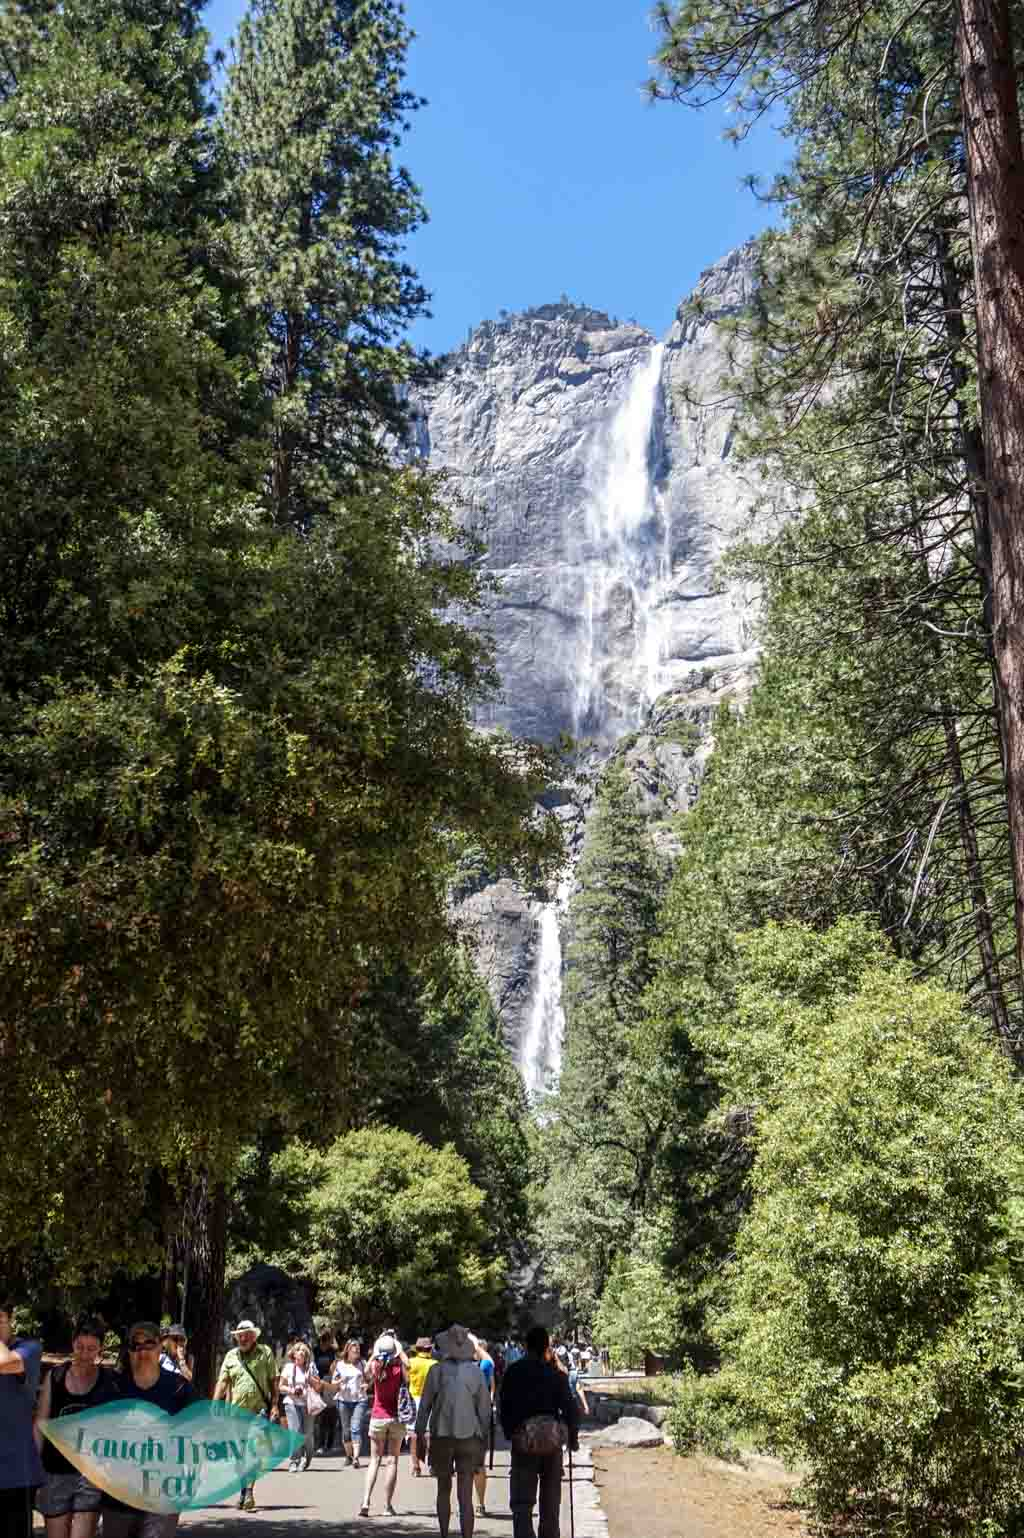 upper-and-lower-yosemite-falls-yosemite-california-usa-laugh-travel-eat